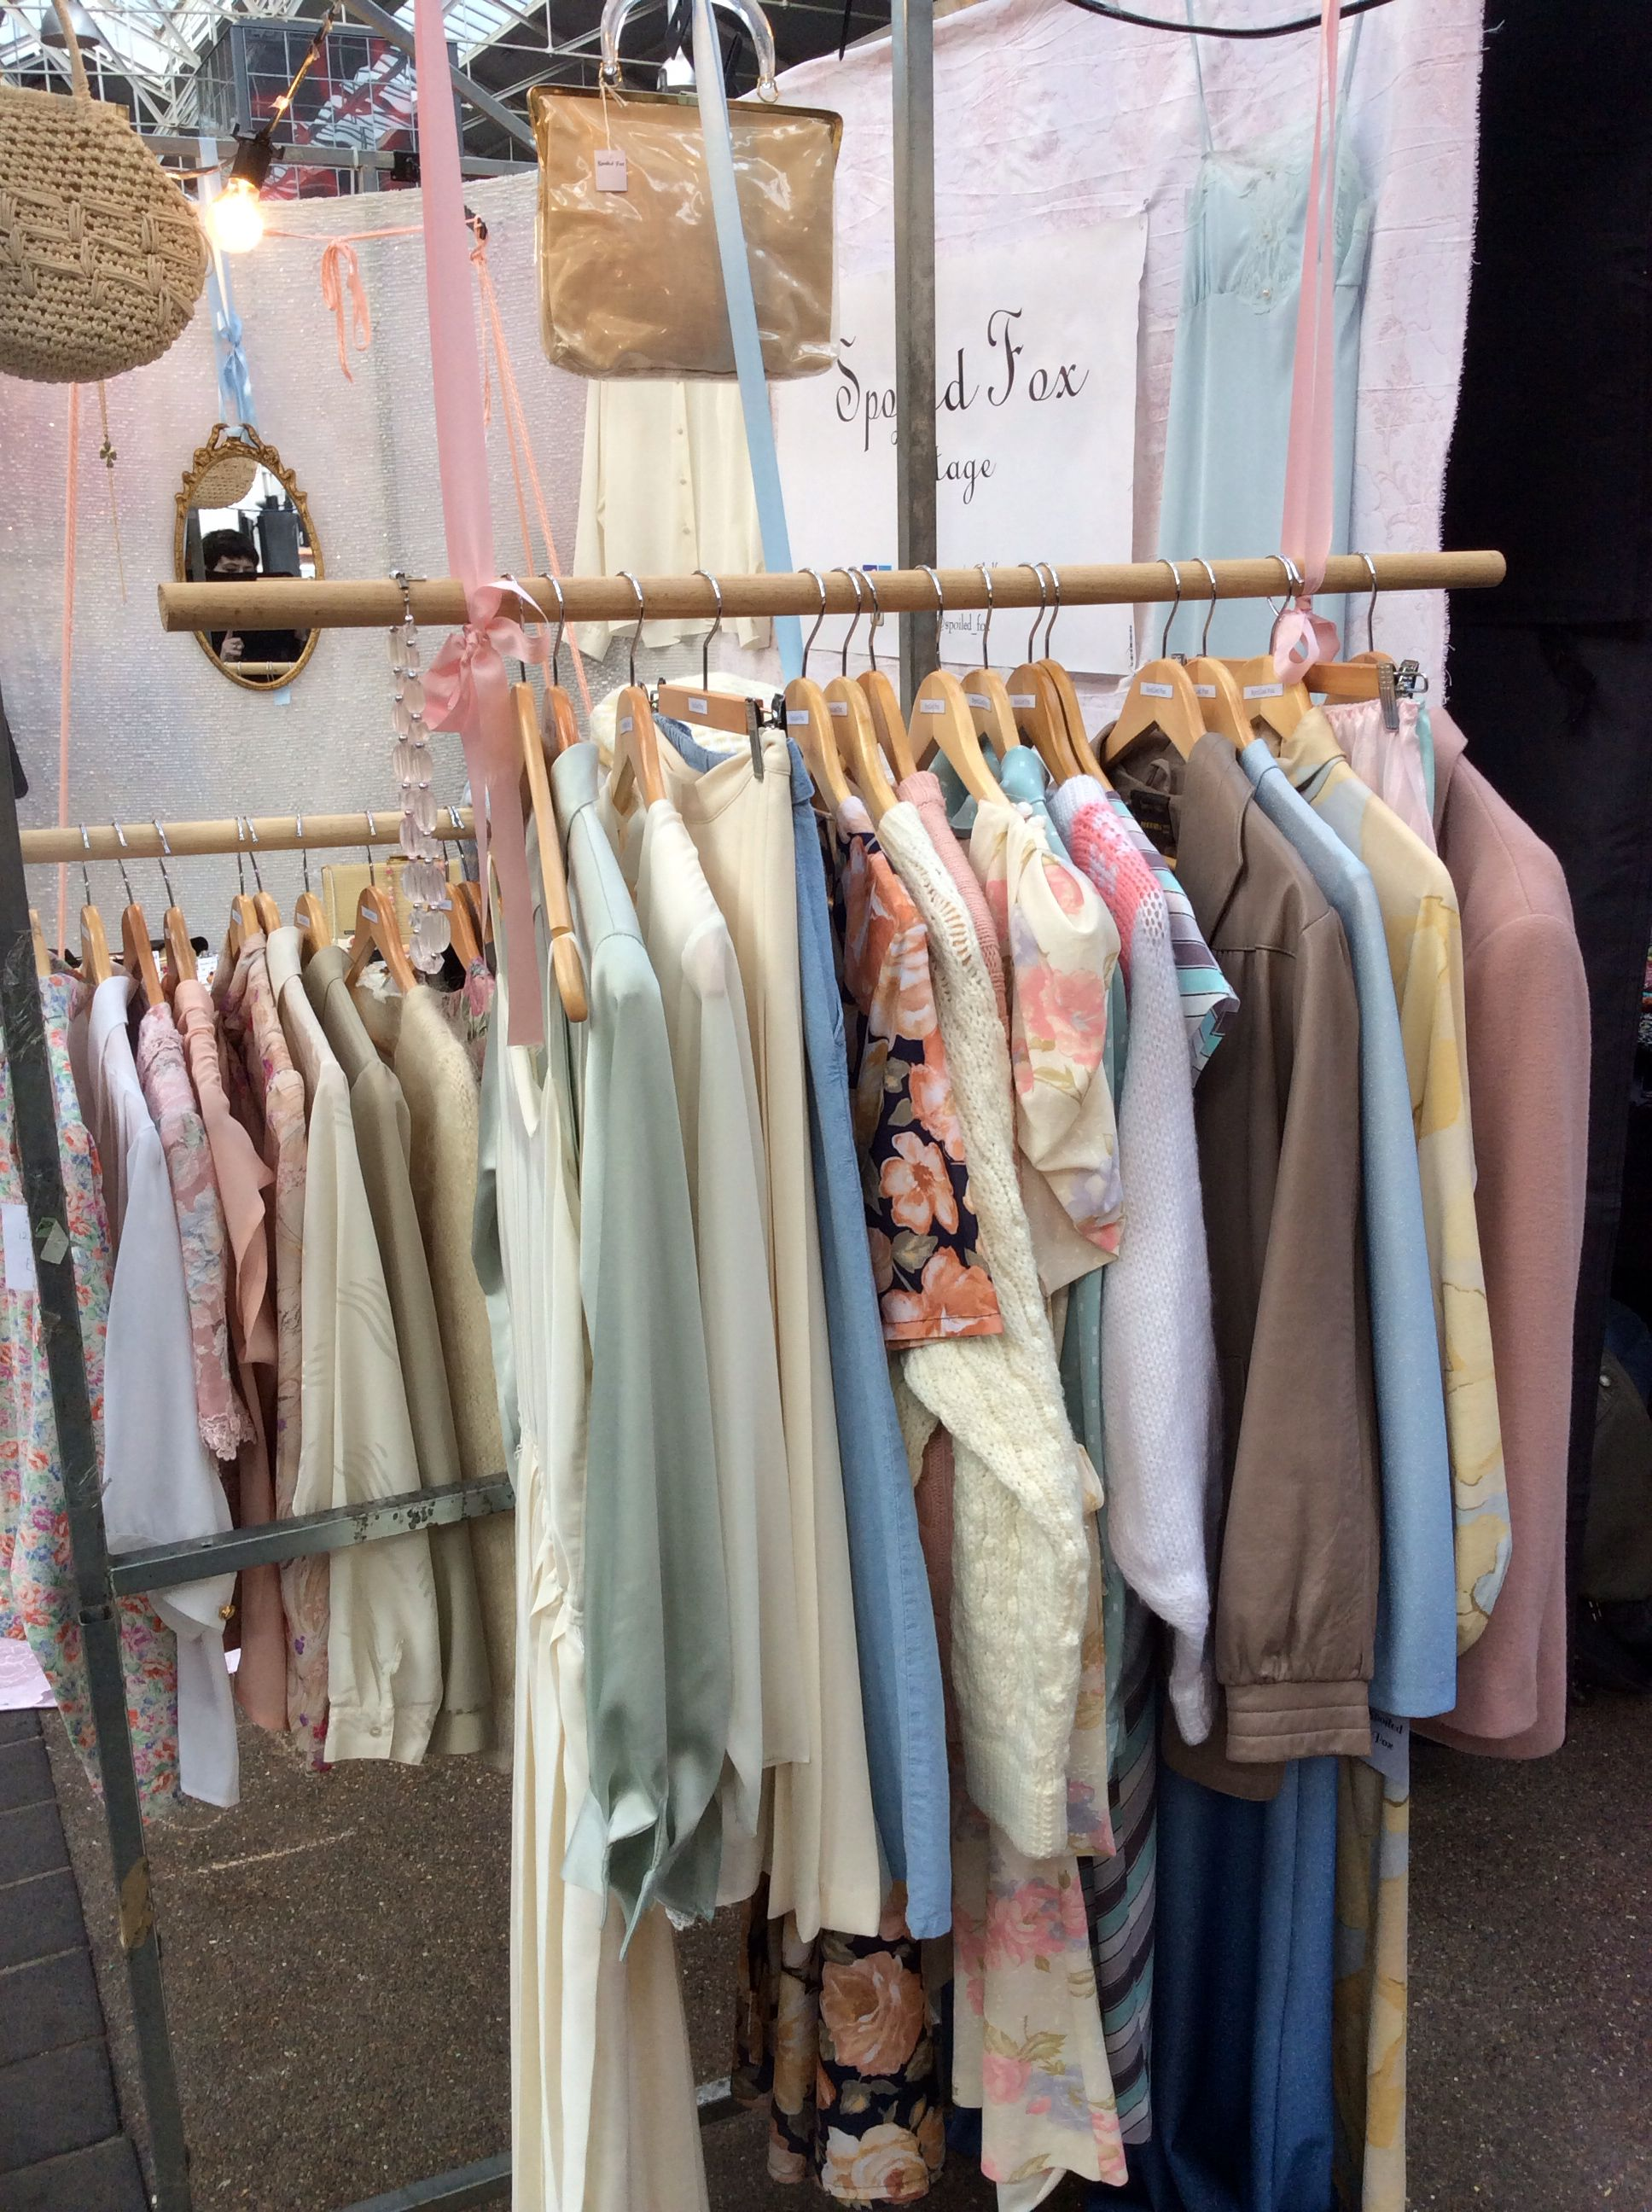 Vintage Market Stall In Pastels By Spoiled Fox Vintage Clothing